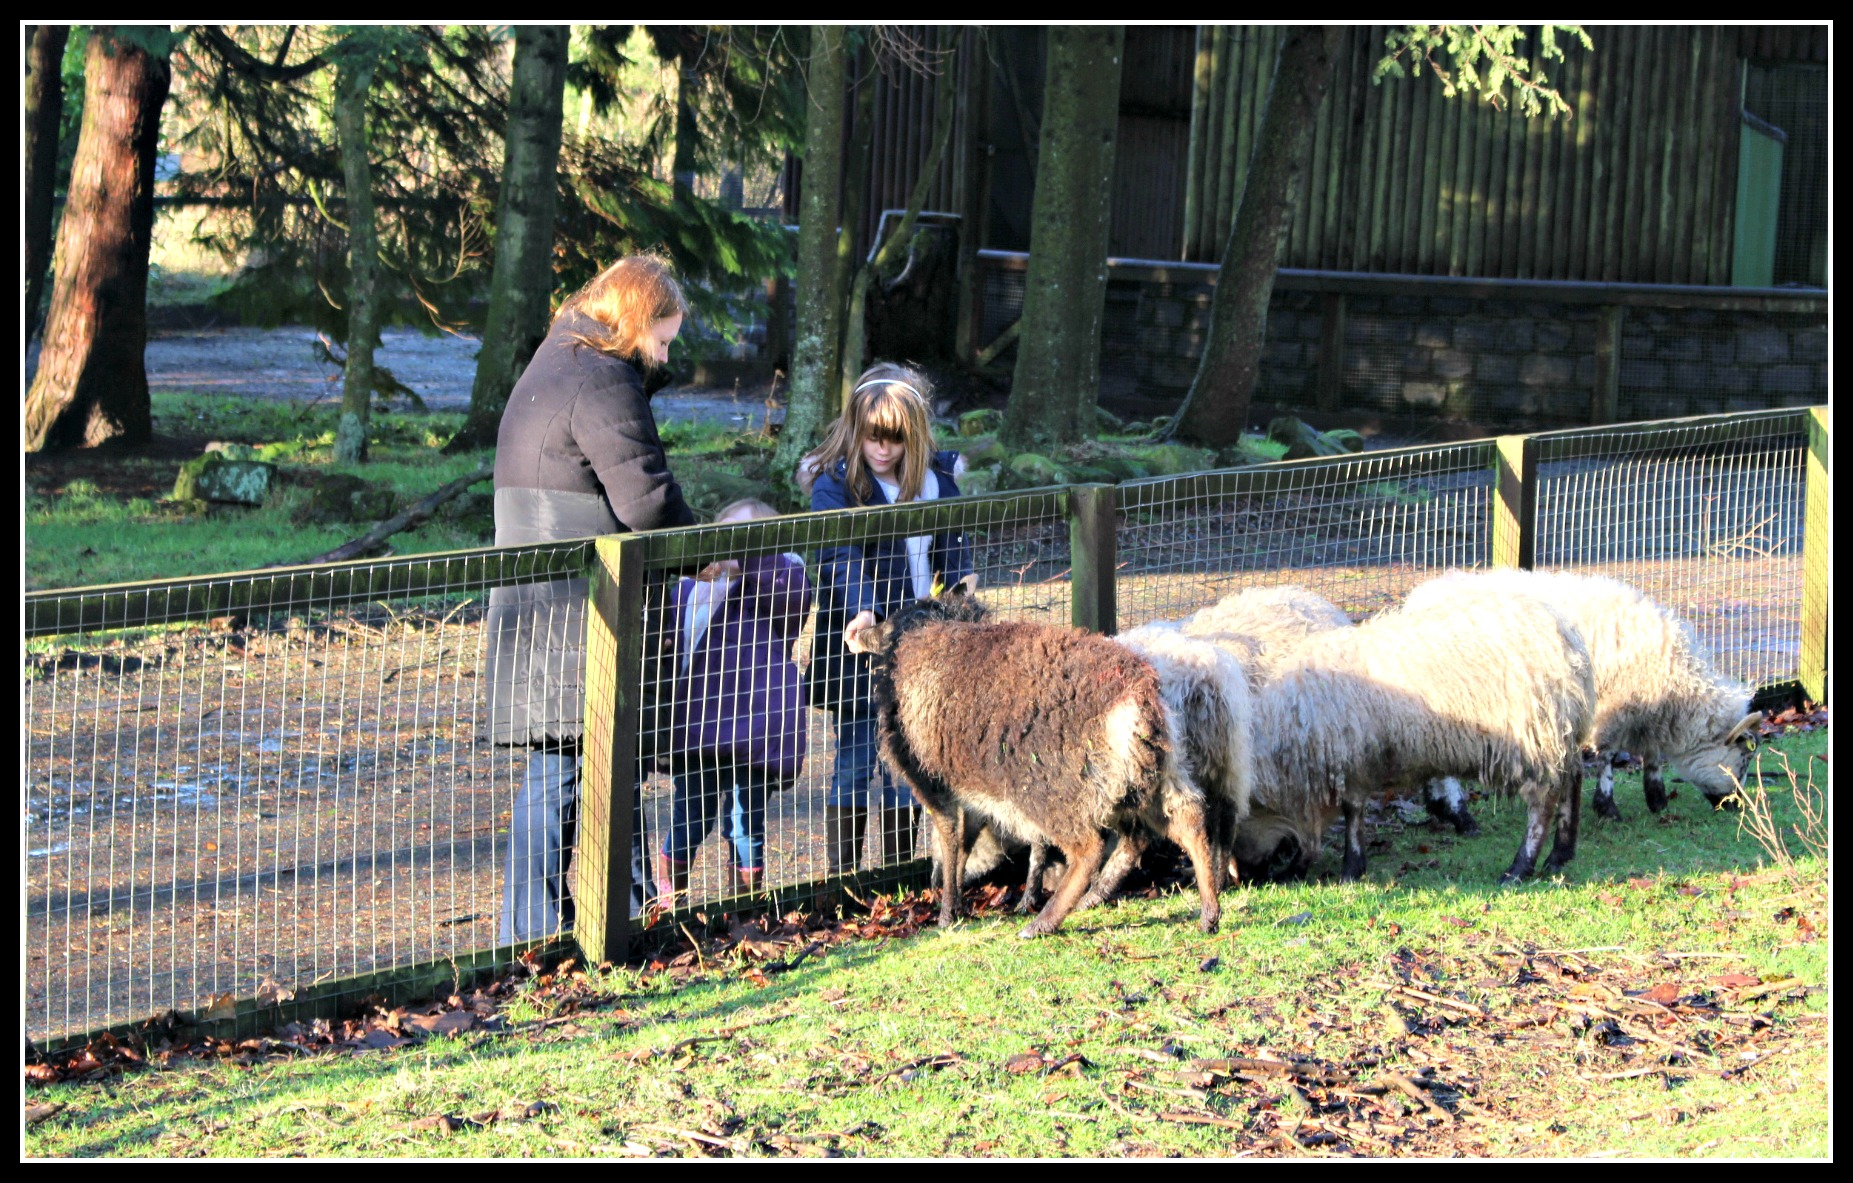 Palacerigg COuntry Park, days out with children, Scotland, North Lanarkshire